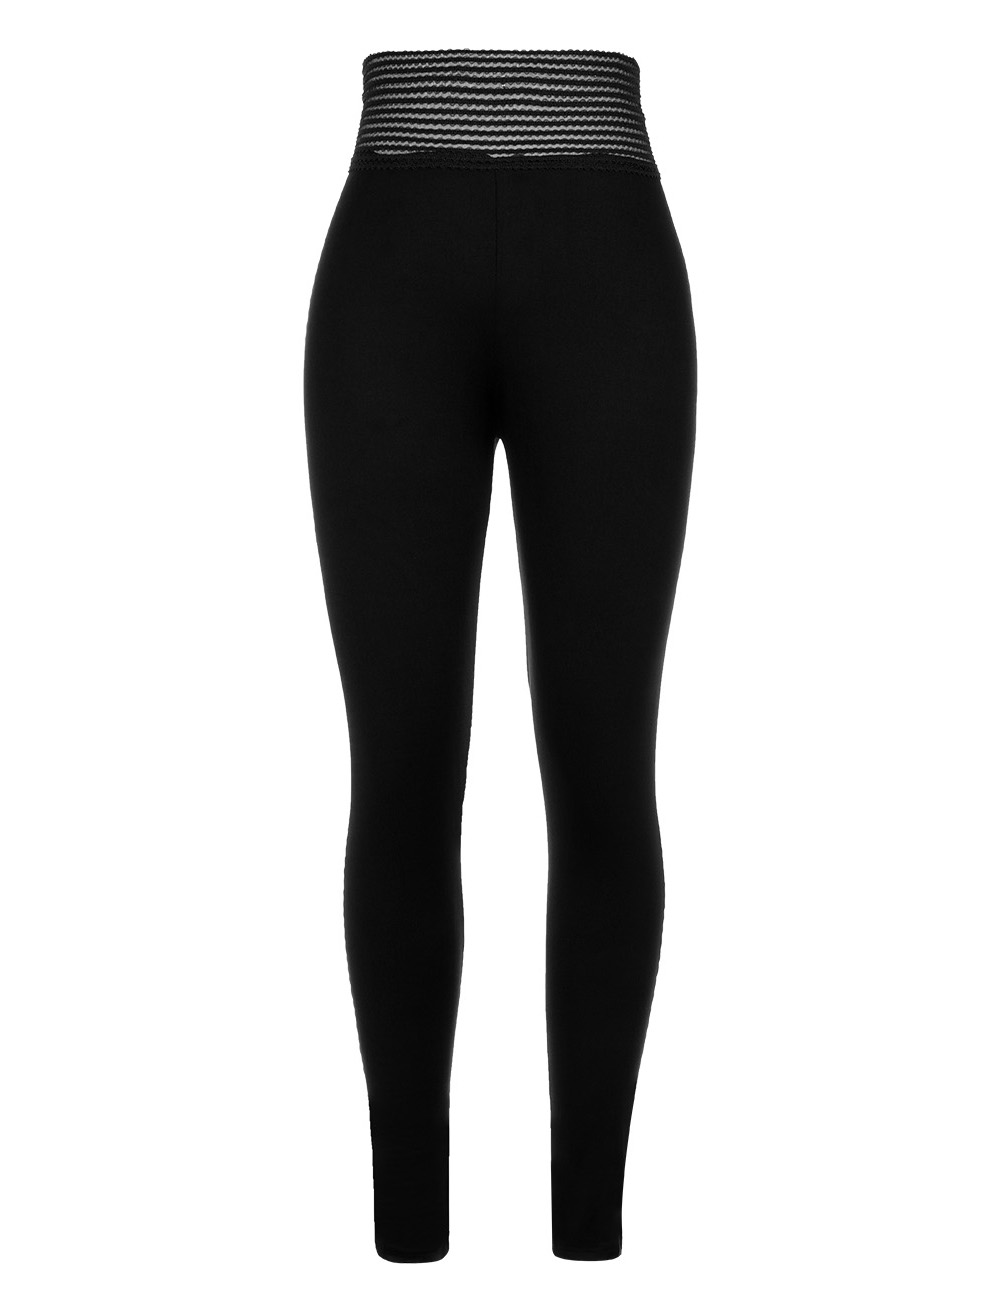 //cdn.affectcloud.com/hexinfashion/upload/imgs/SPORTSWEAR/Yoga_Legging/P180085-BK1/P180085-BK1-202002115e4205694c606.jpg